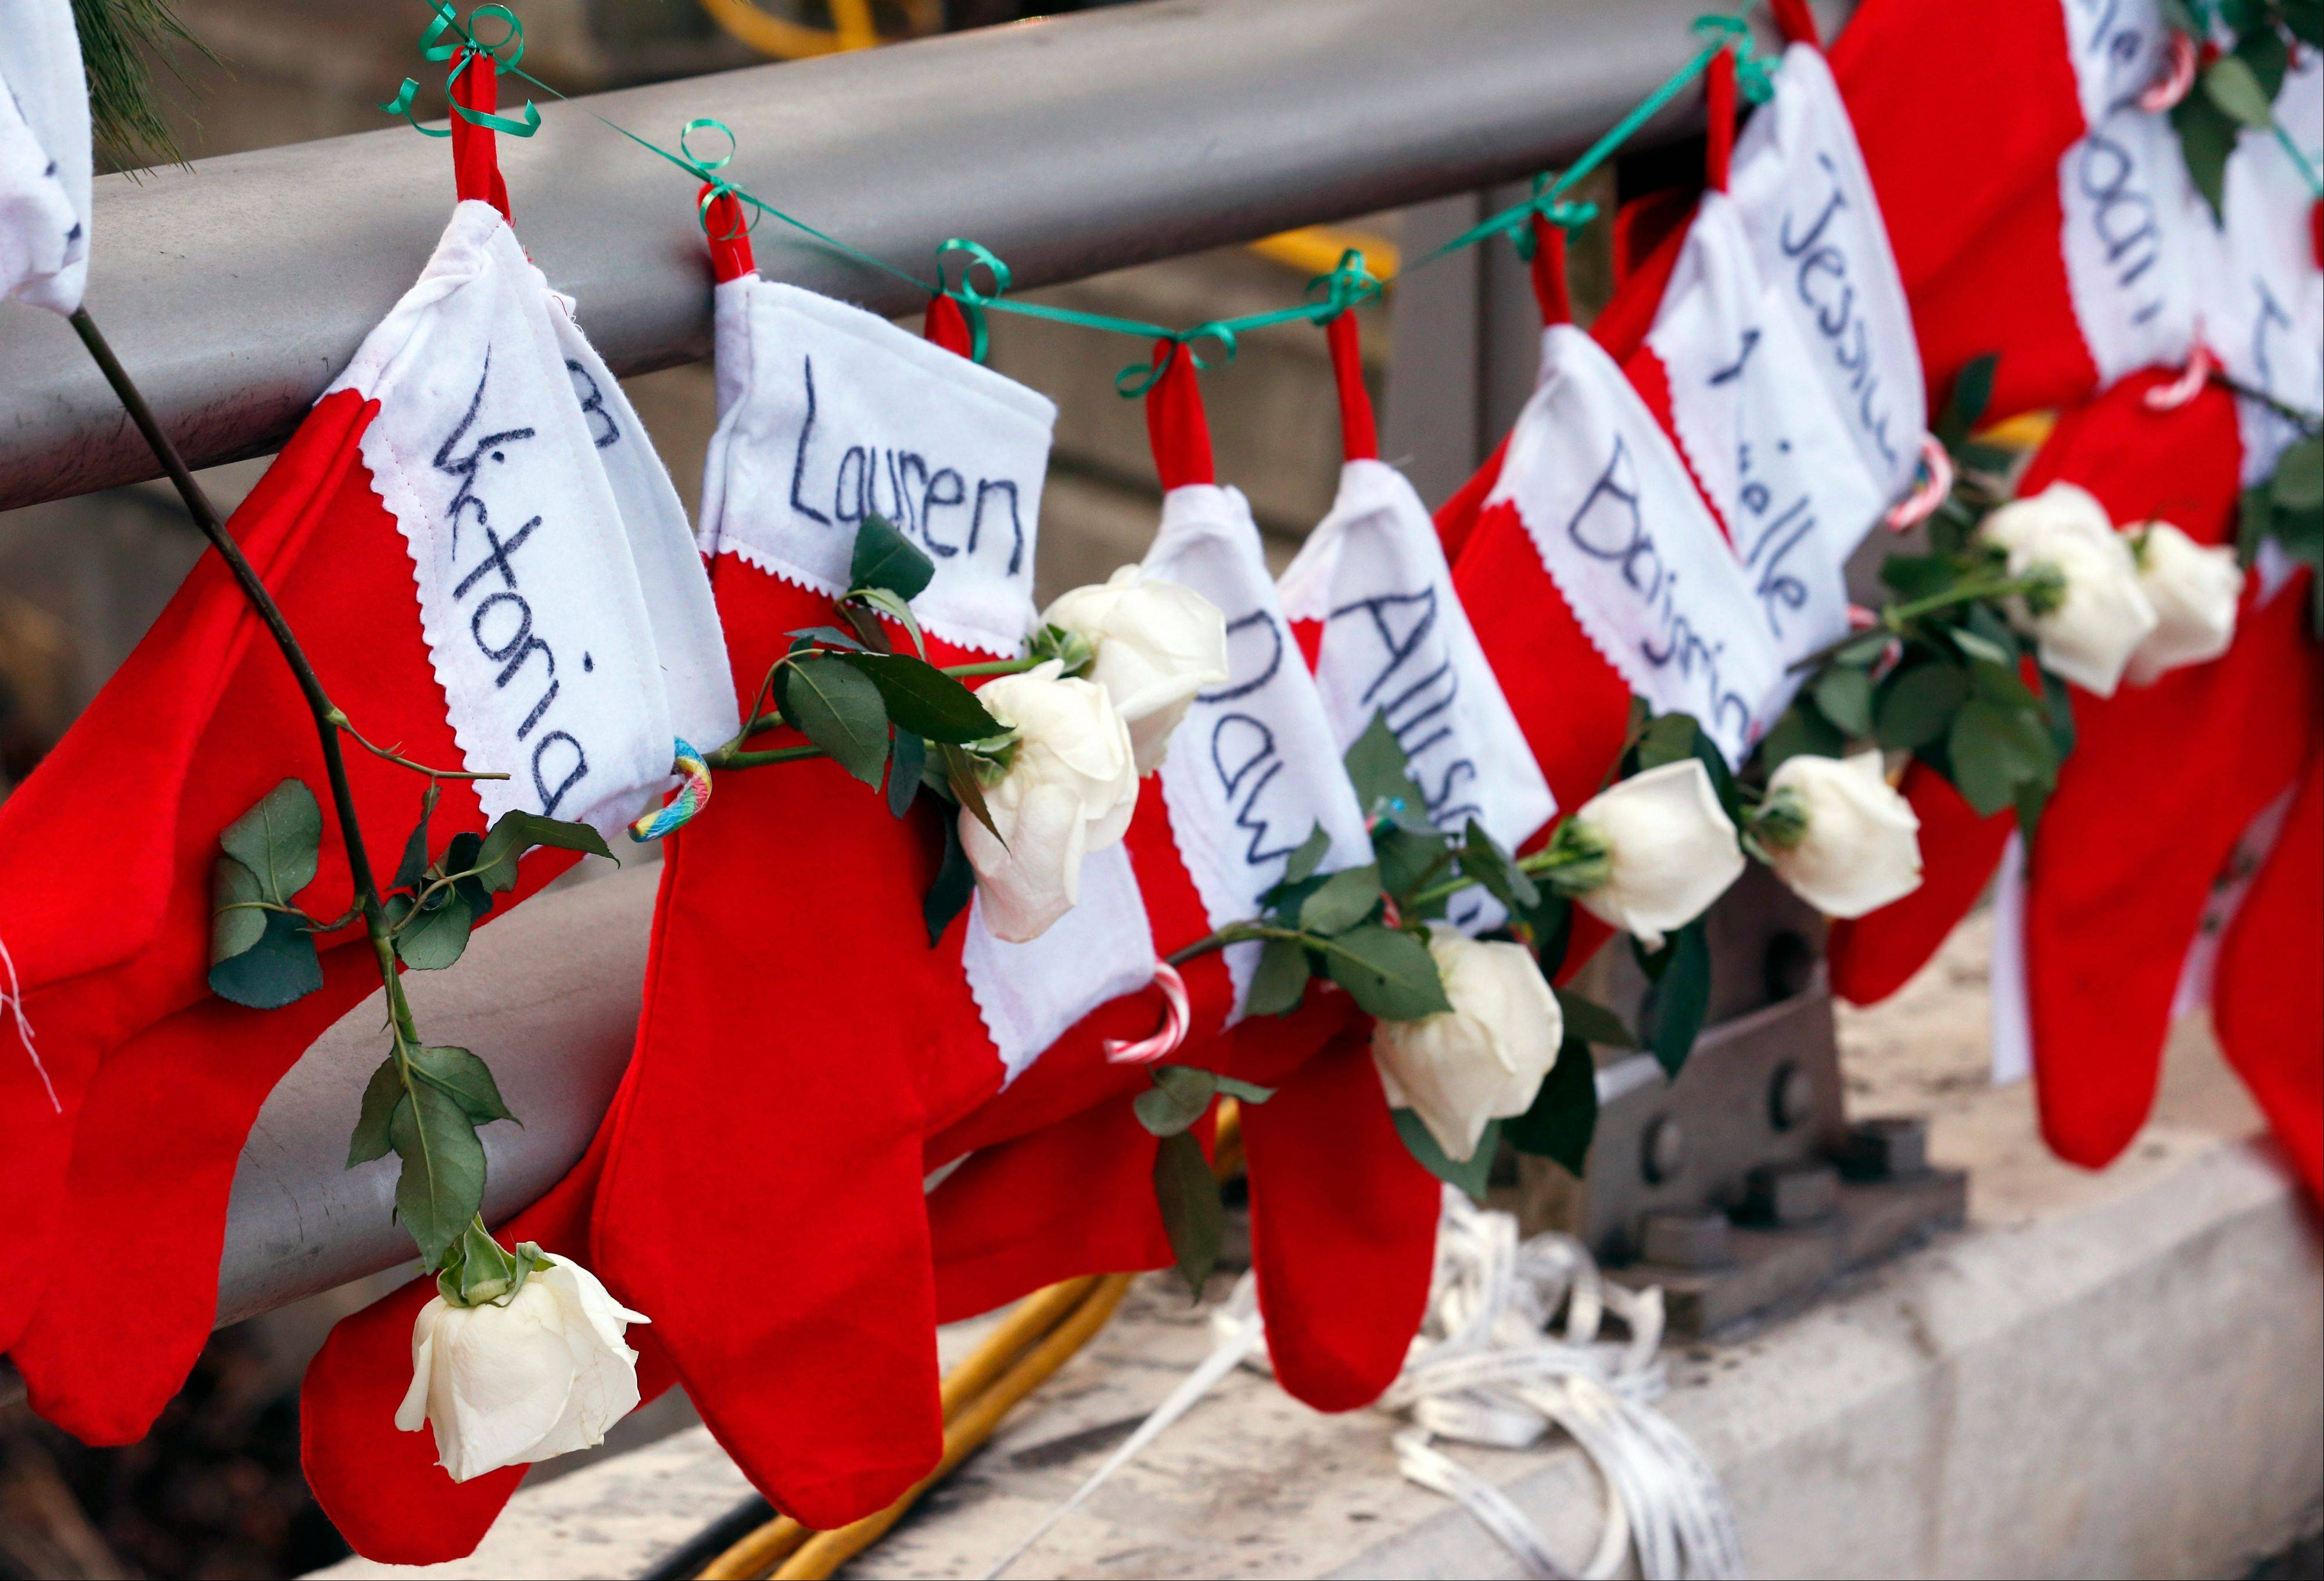 Newtown celebrates Christmas and remembers victims